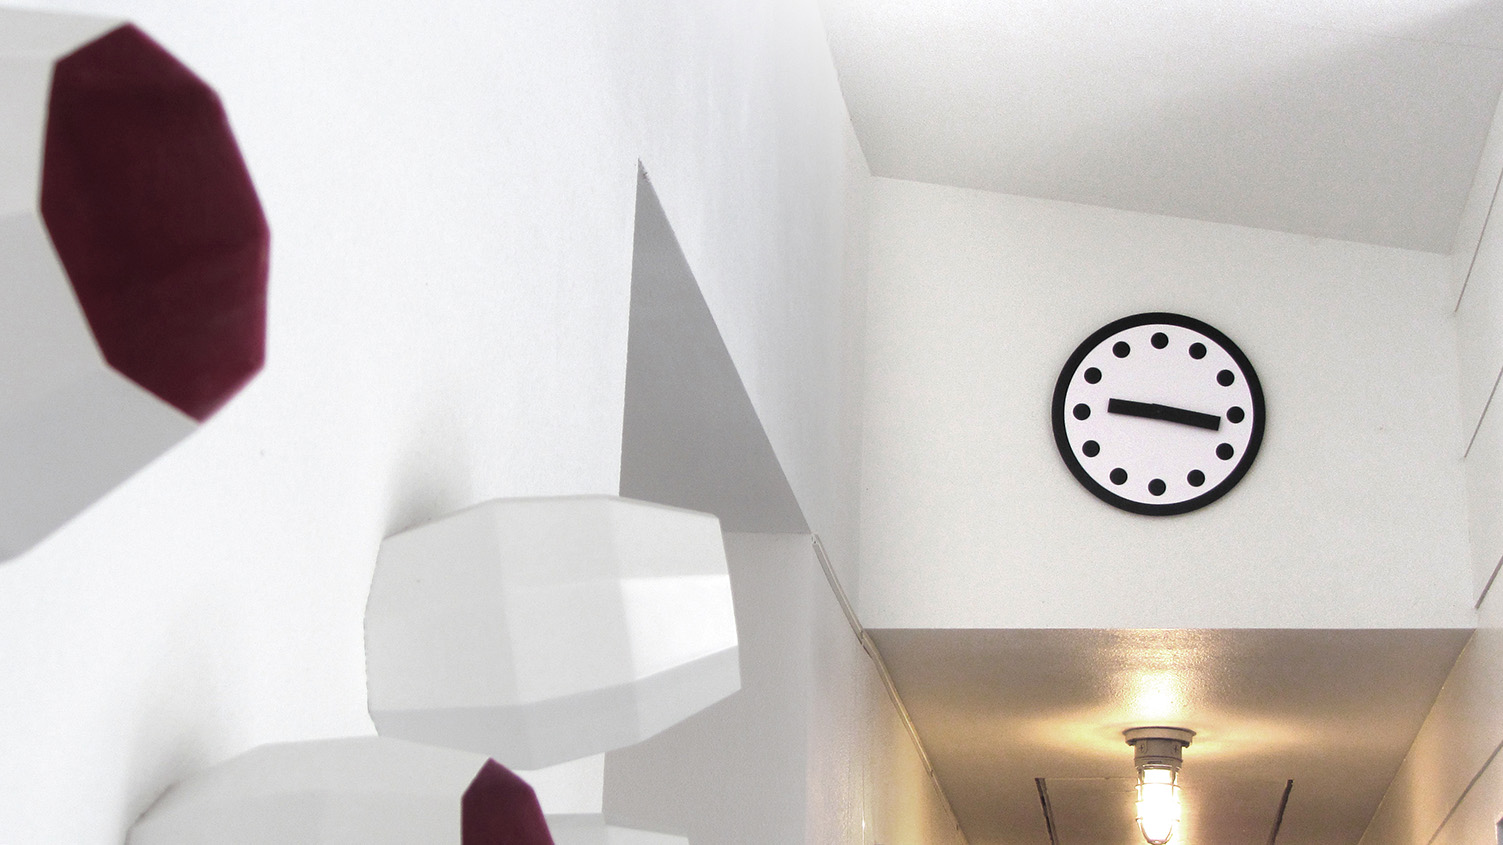 hangingn in the balance clock preview2 WEB.jpg